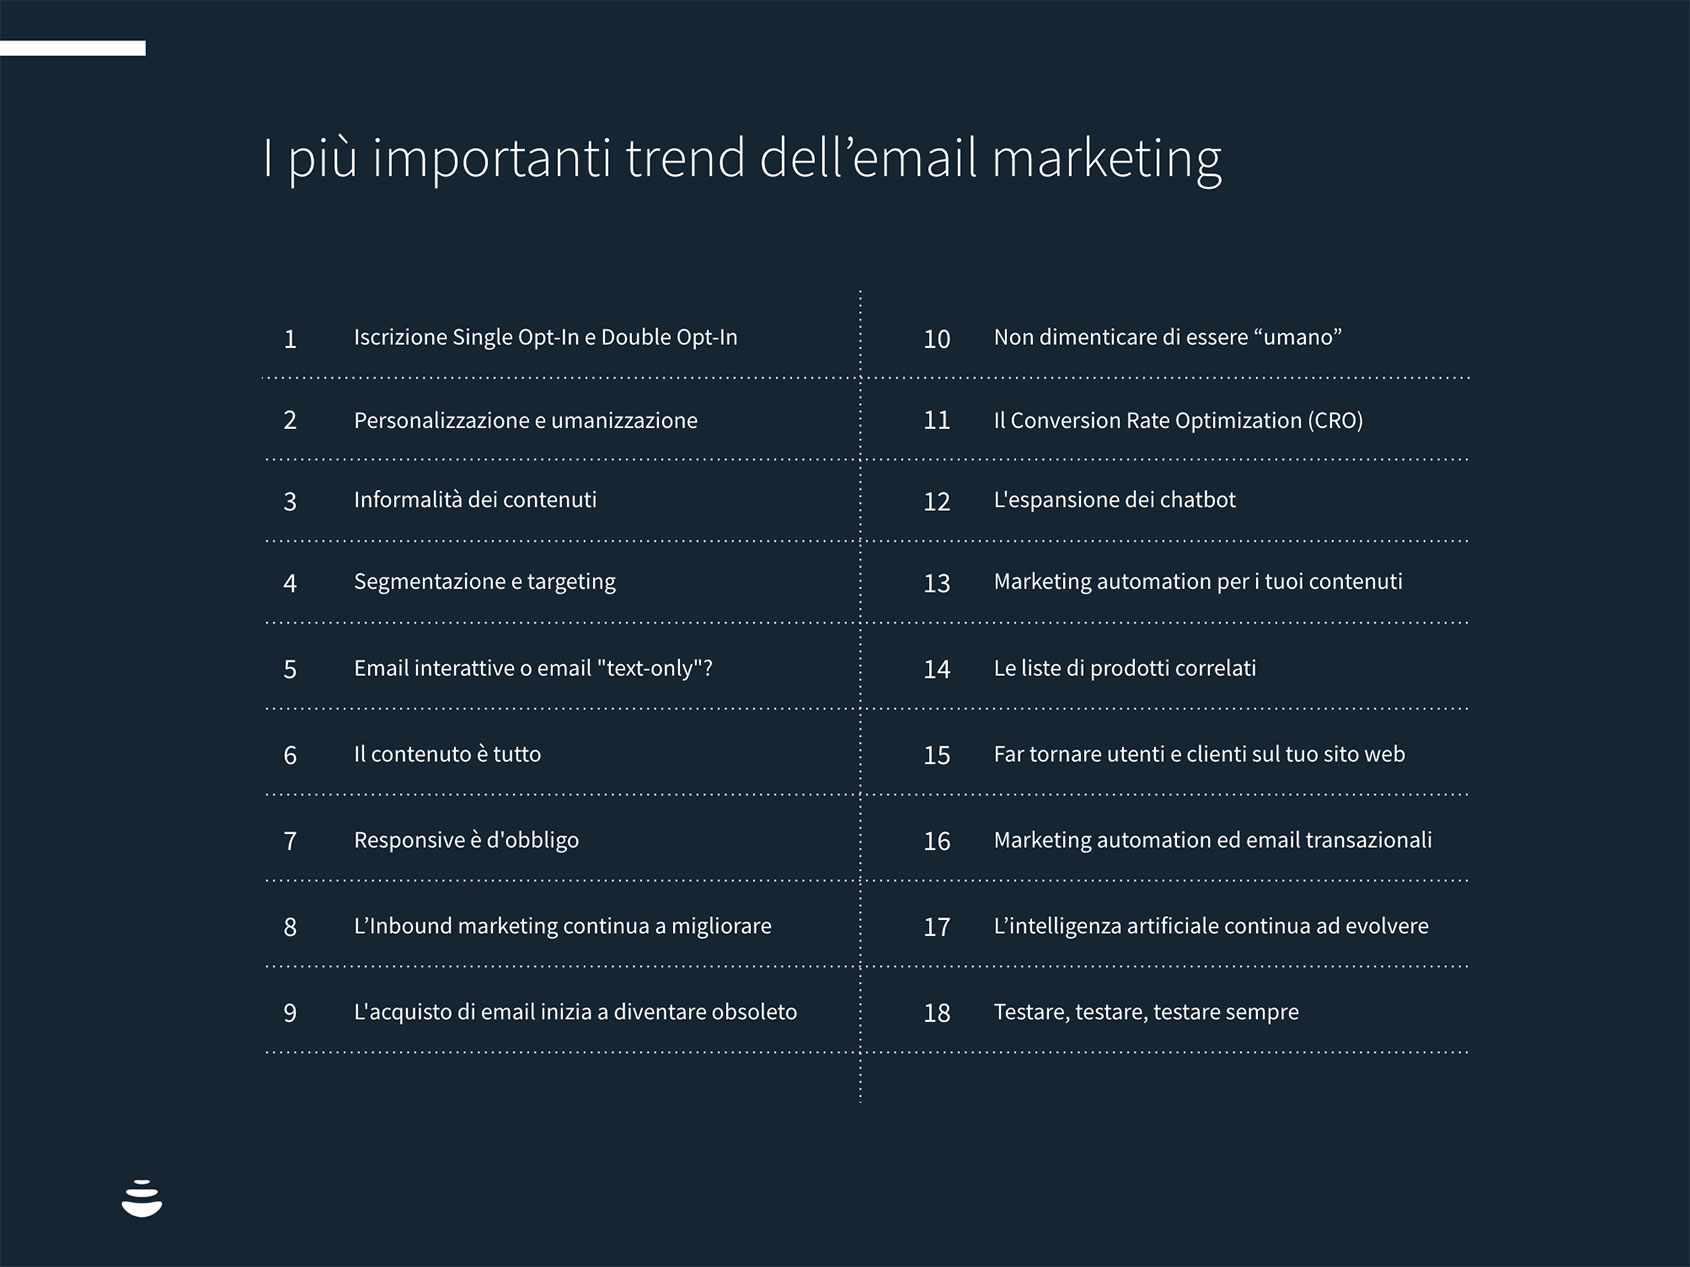 email marketing trend